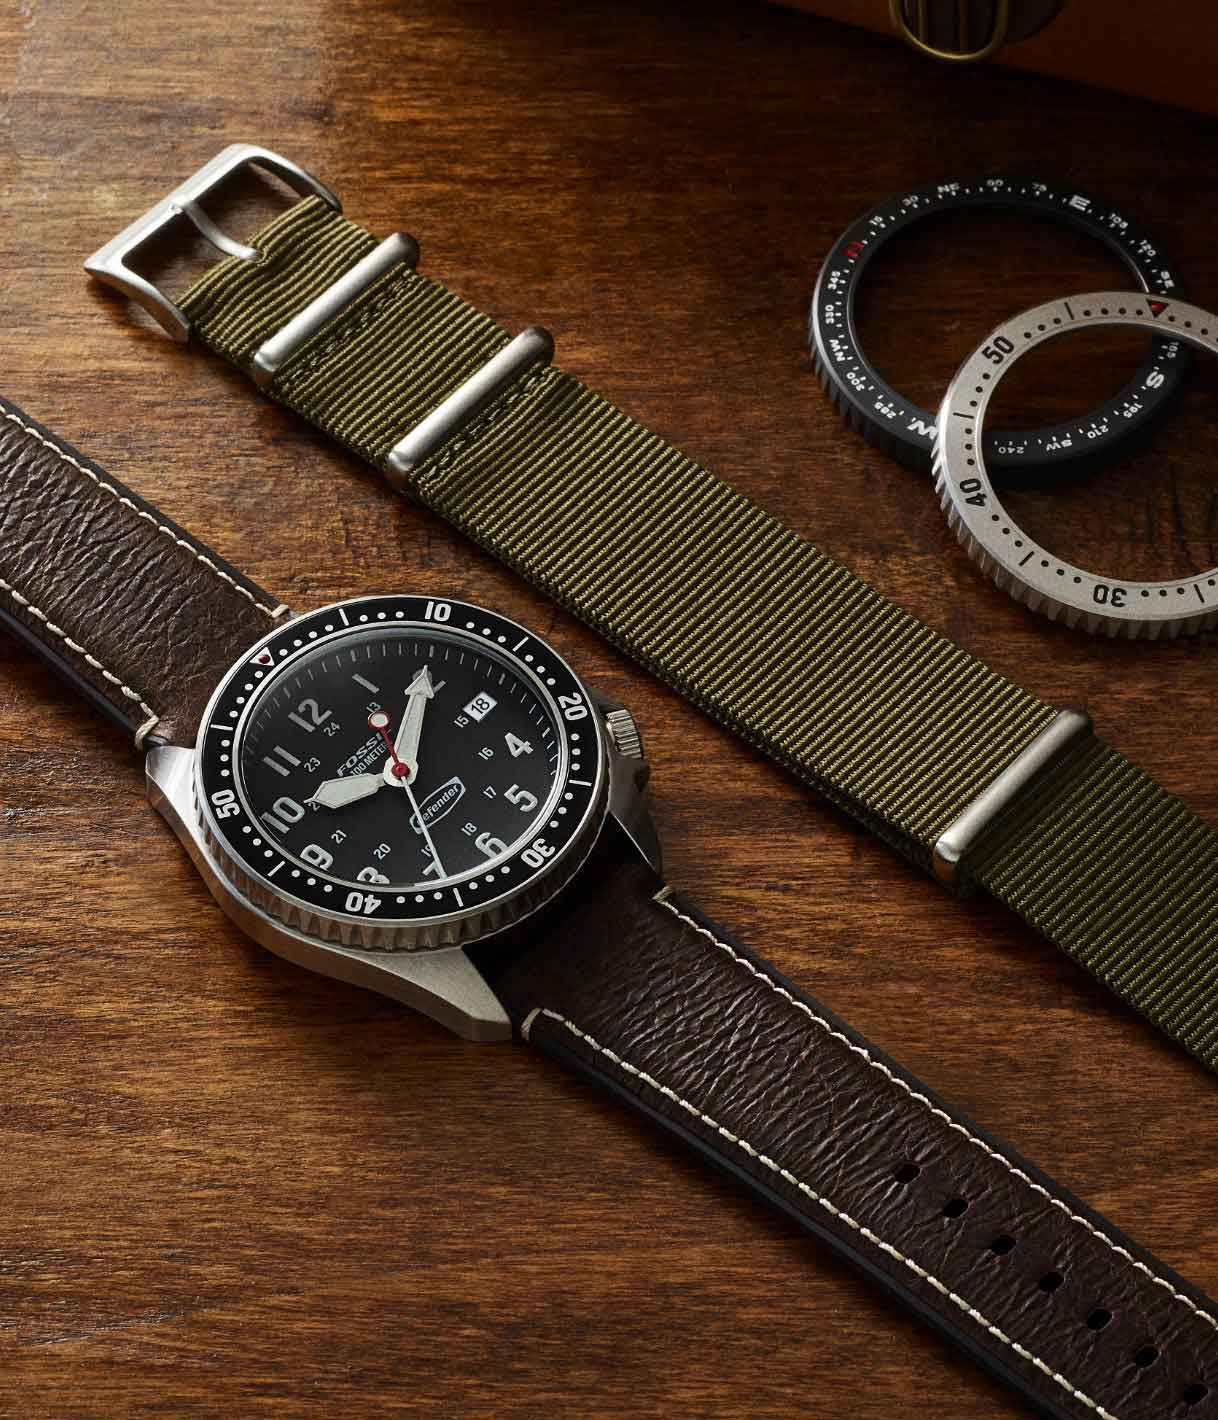 Defender watch beside extra strap and bezels.